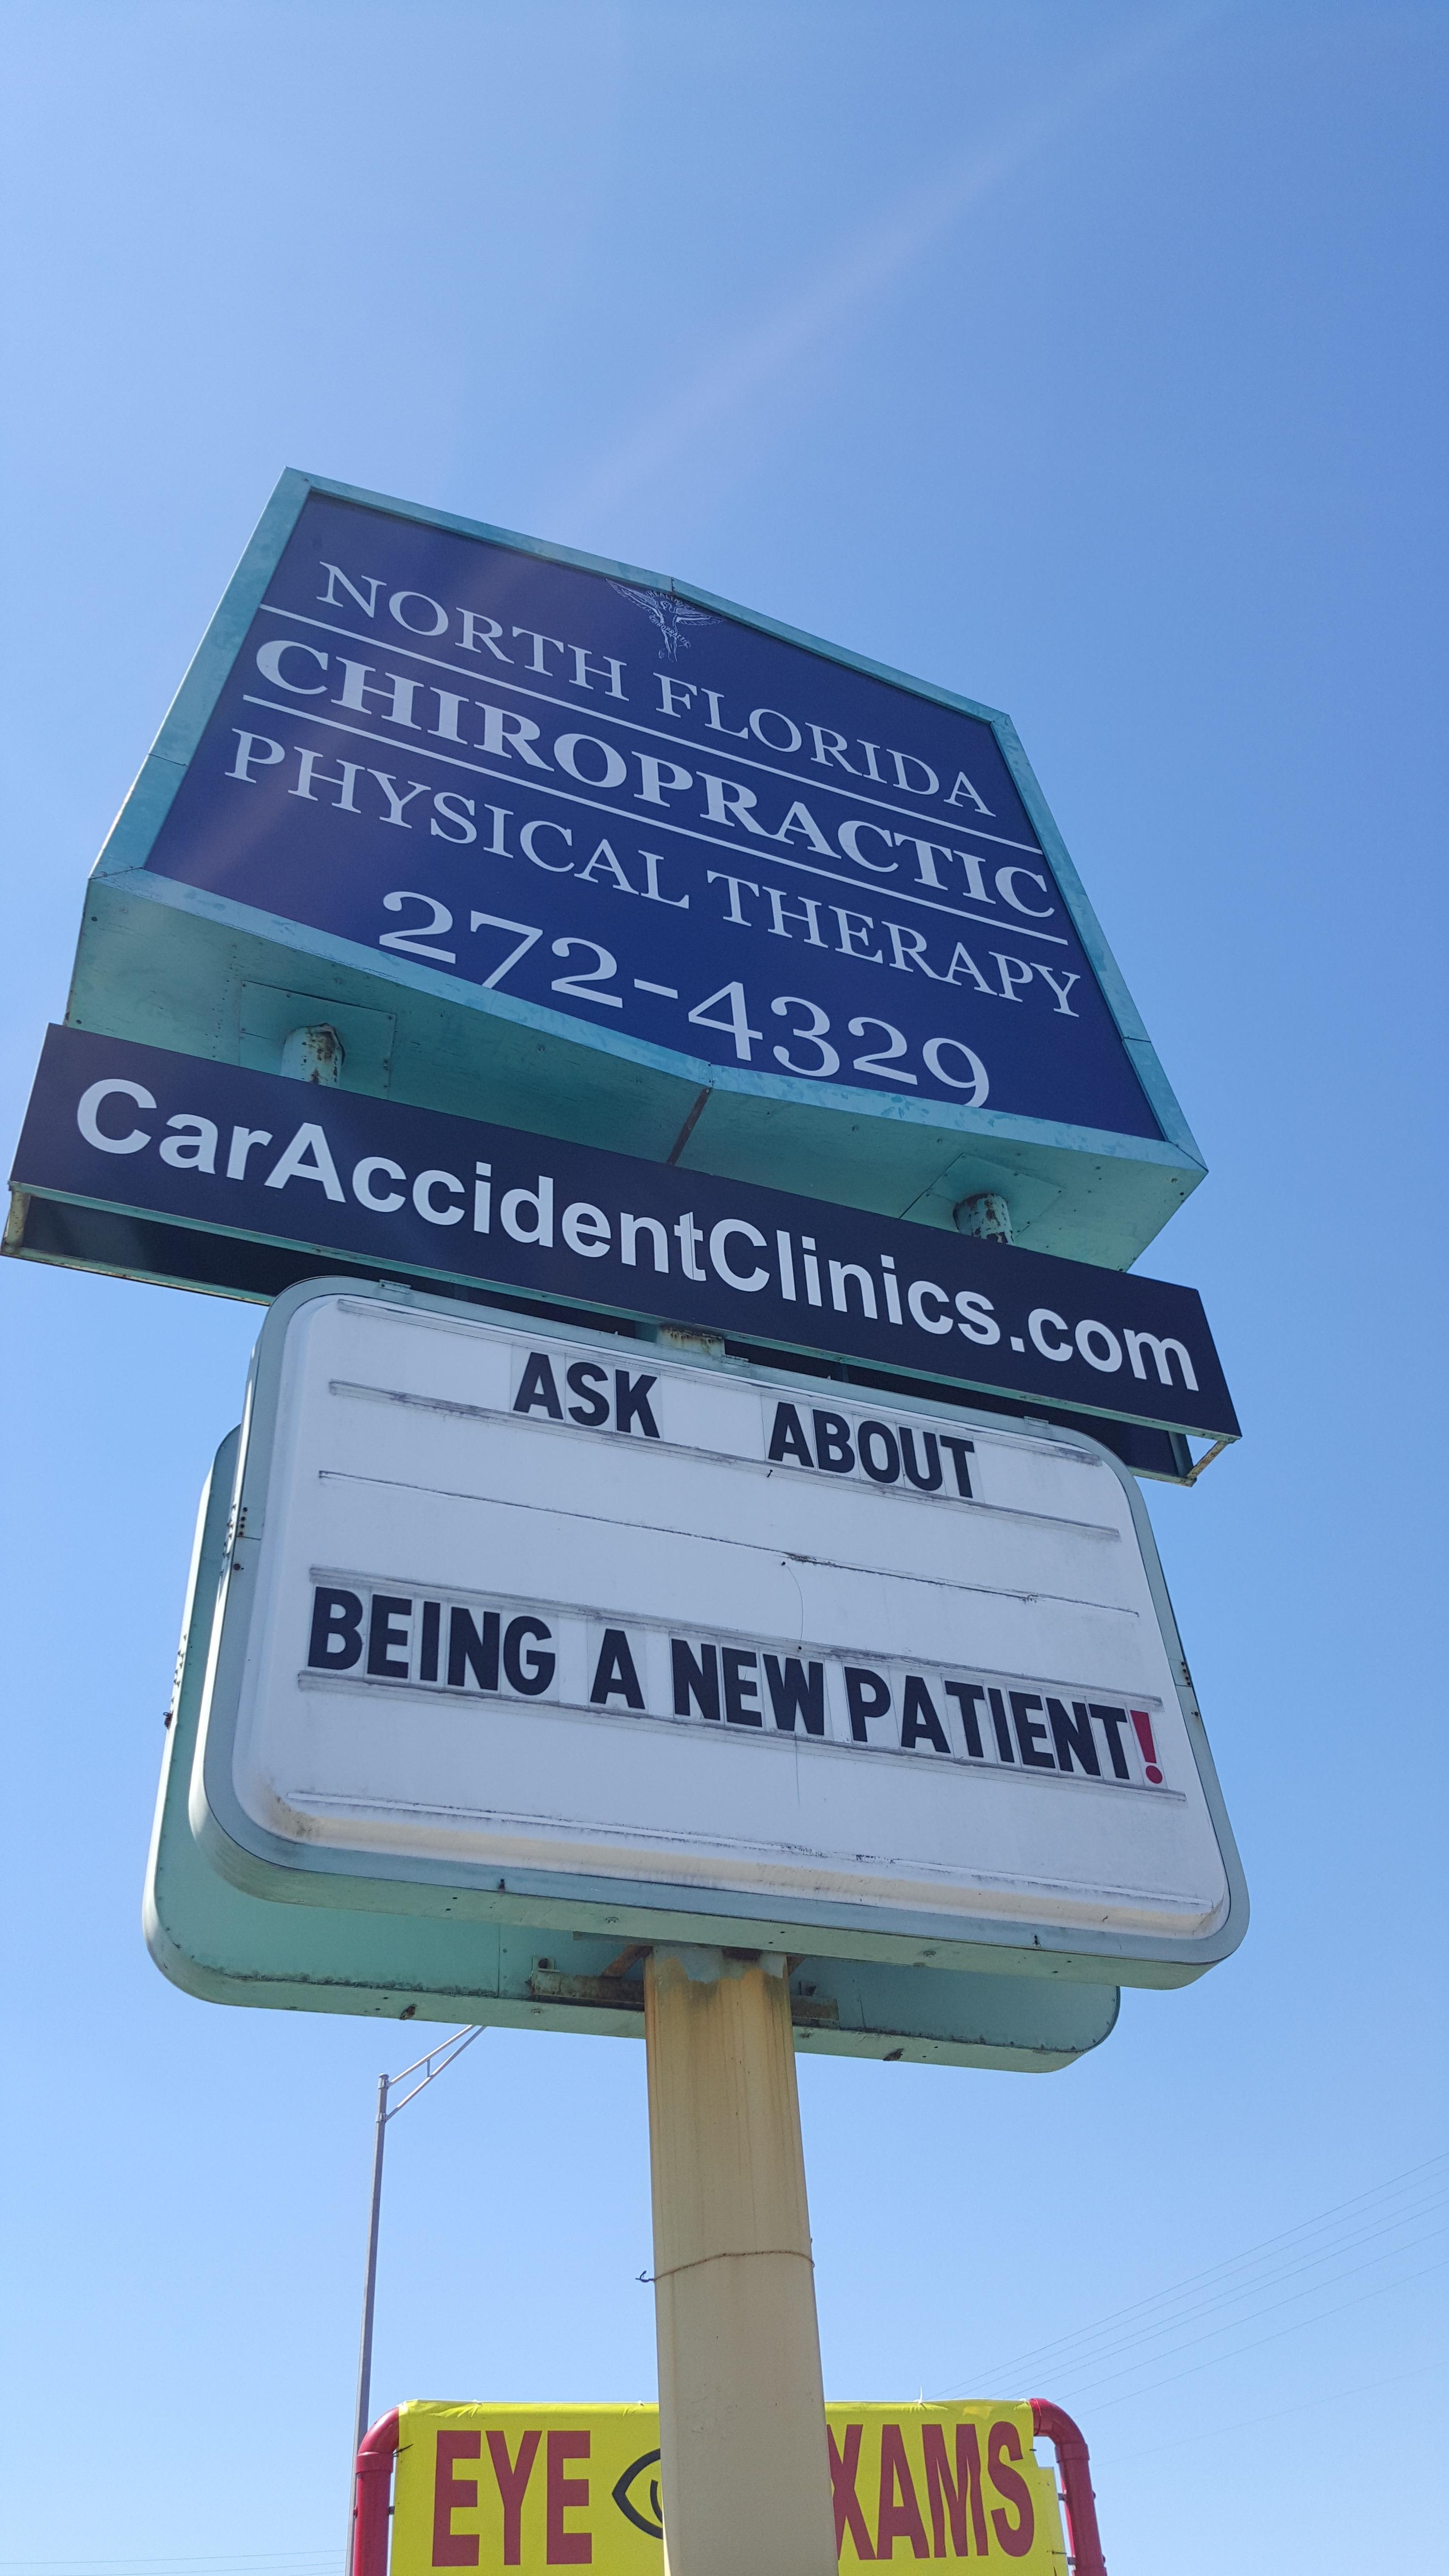 North Florida Chiropractic Physical Therapy image 5